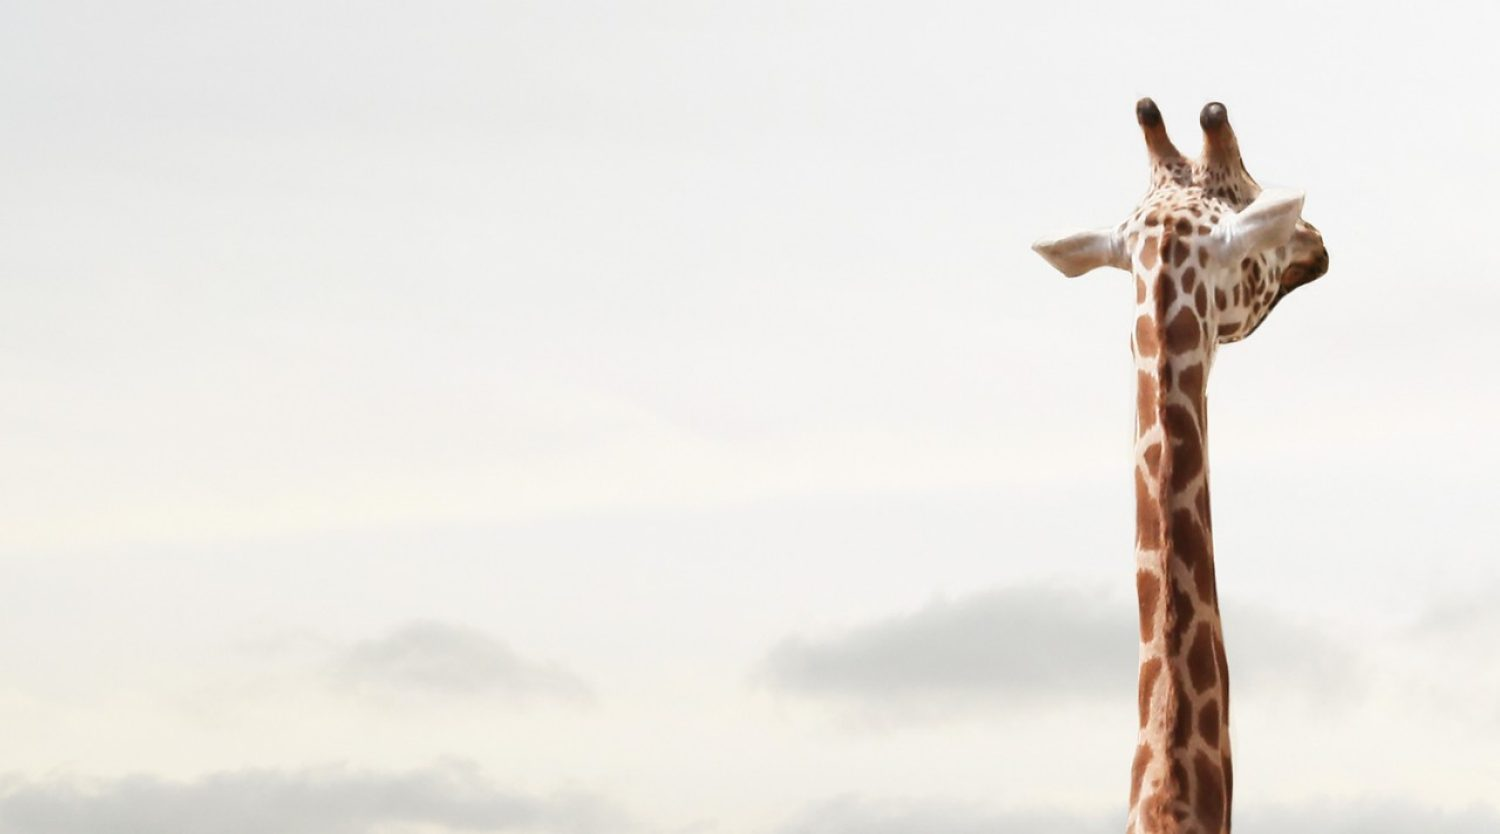 Giraffe (Photo courtesy @GettyImages)